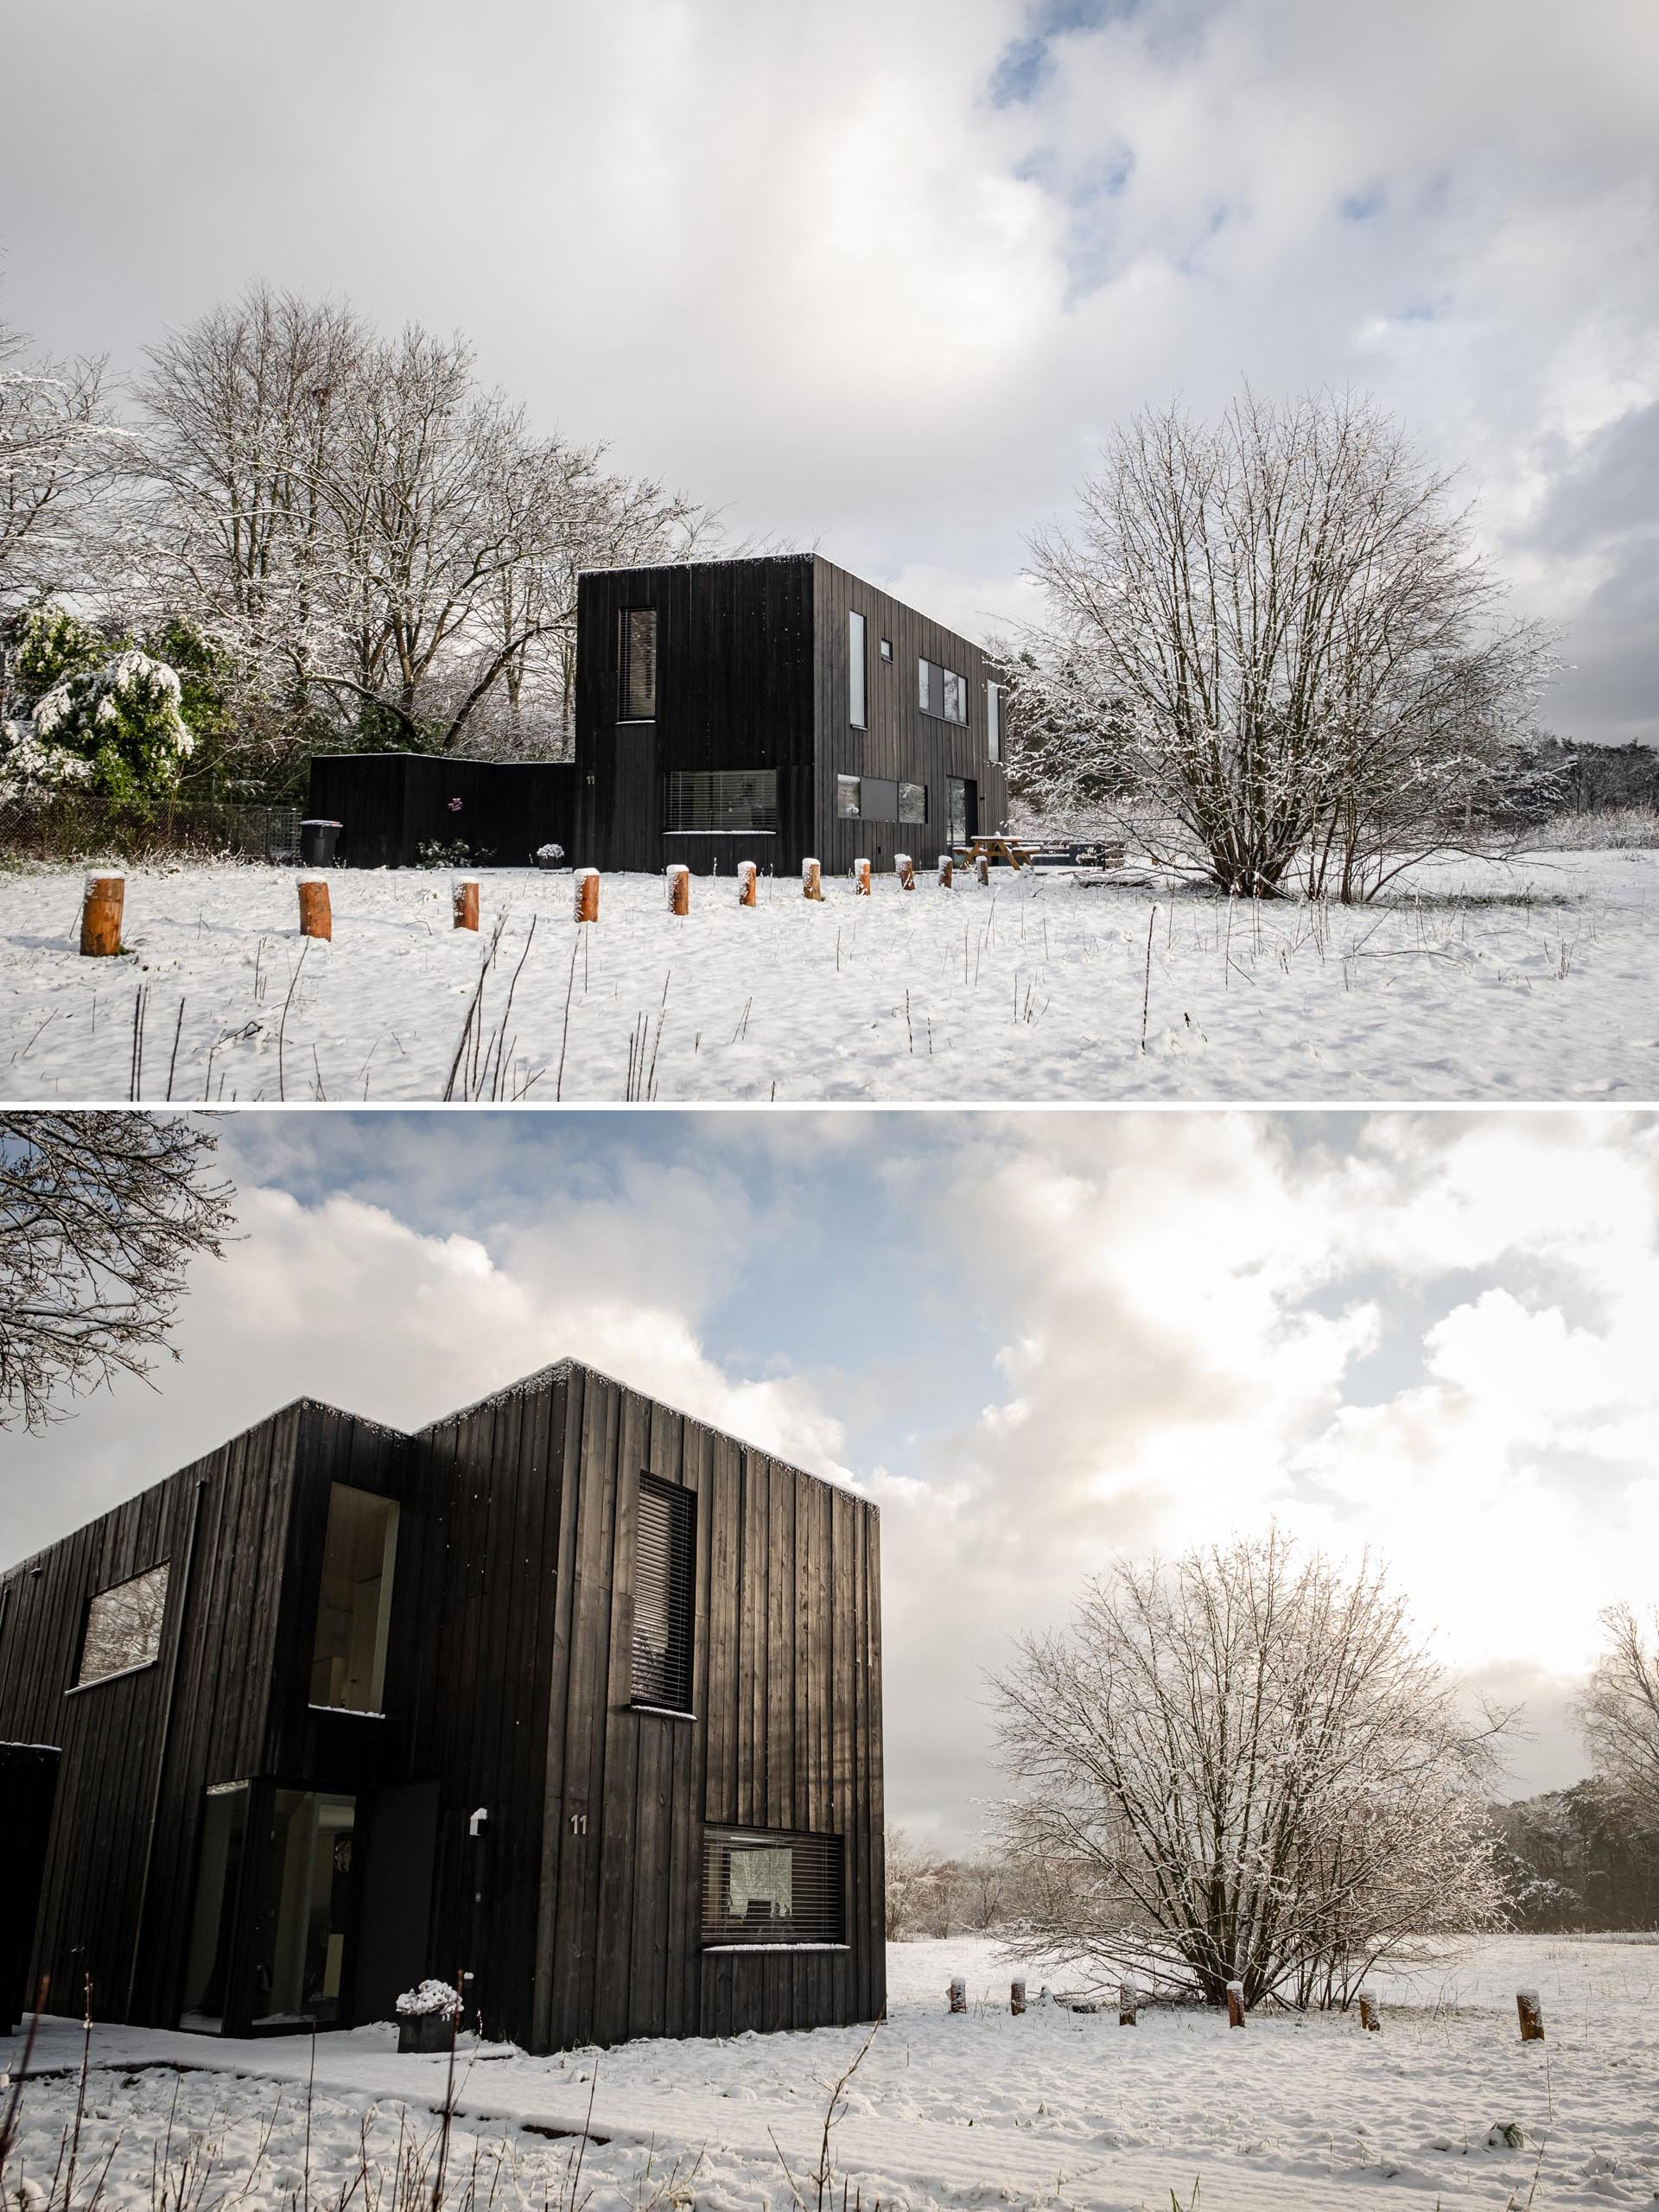 A modern prefab home with black weathered wood siding and black window frames.